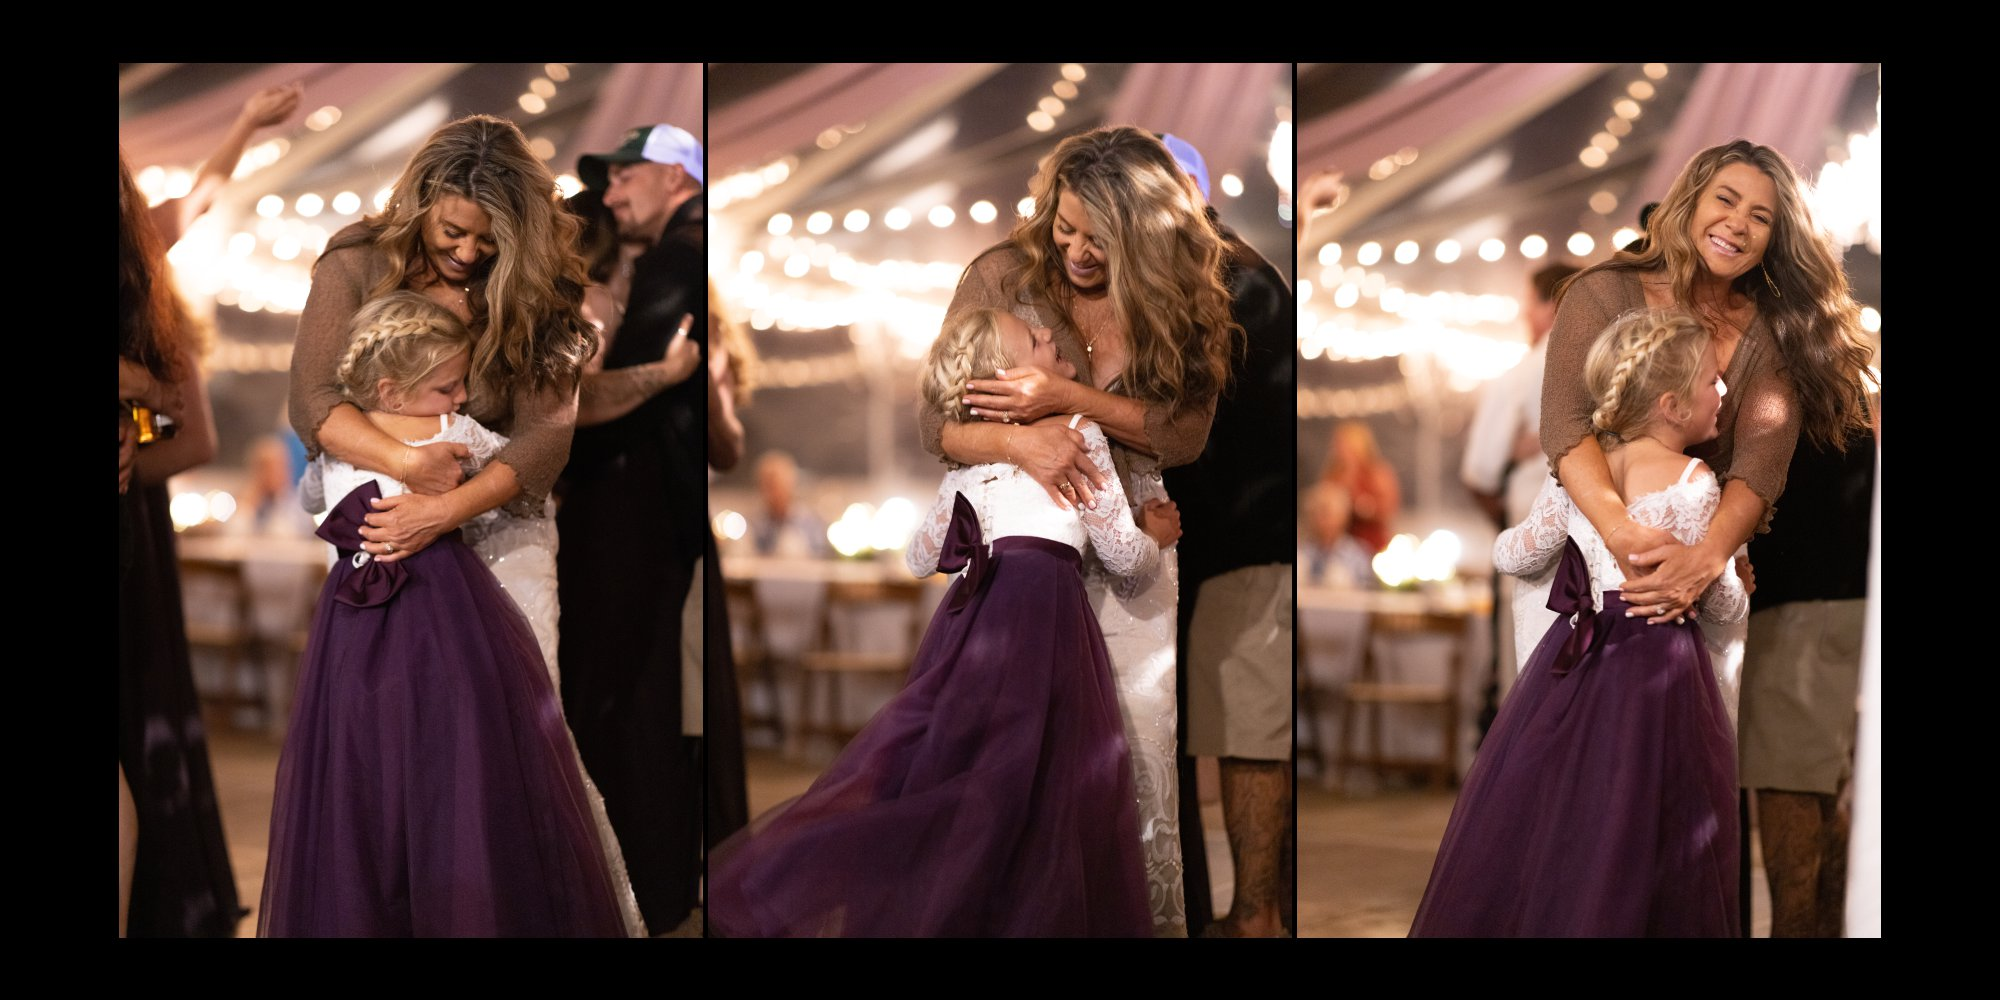 Candid dancing photos with grandmother and grand daughter